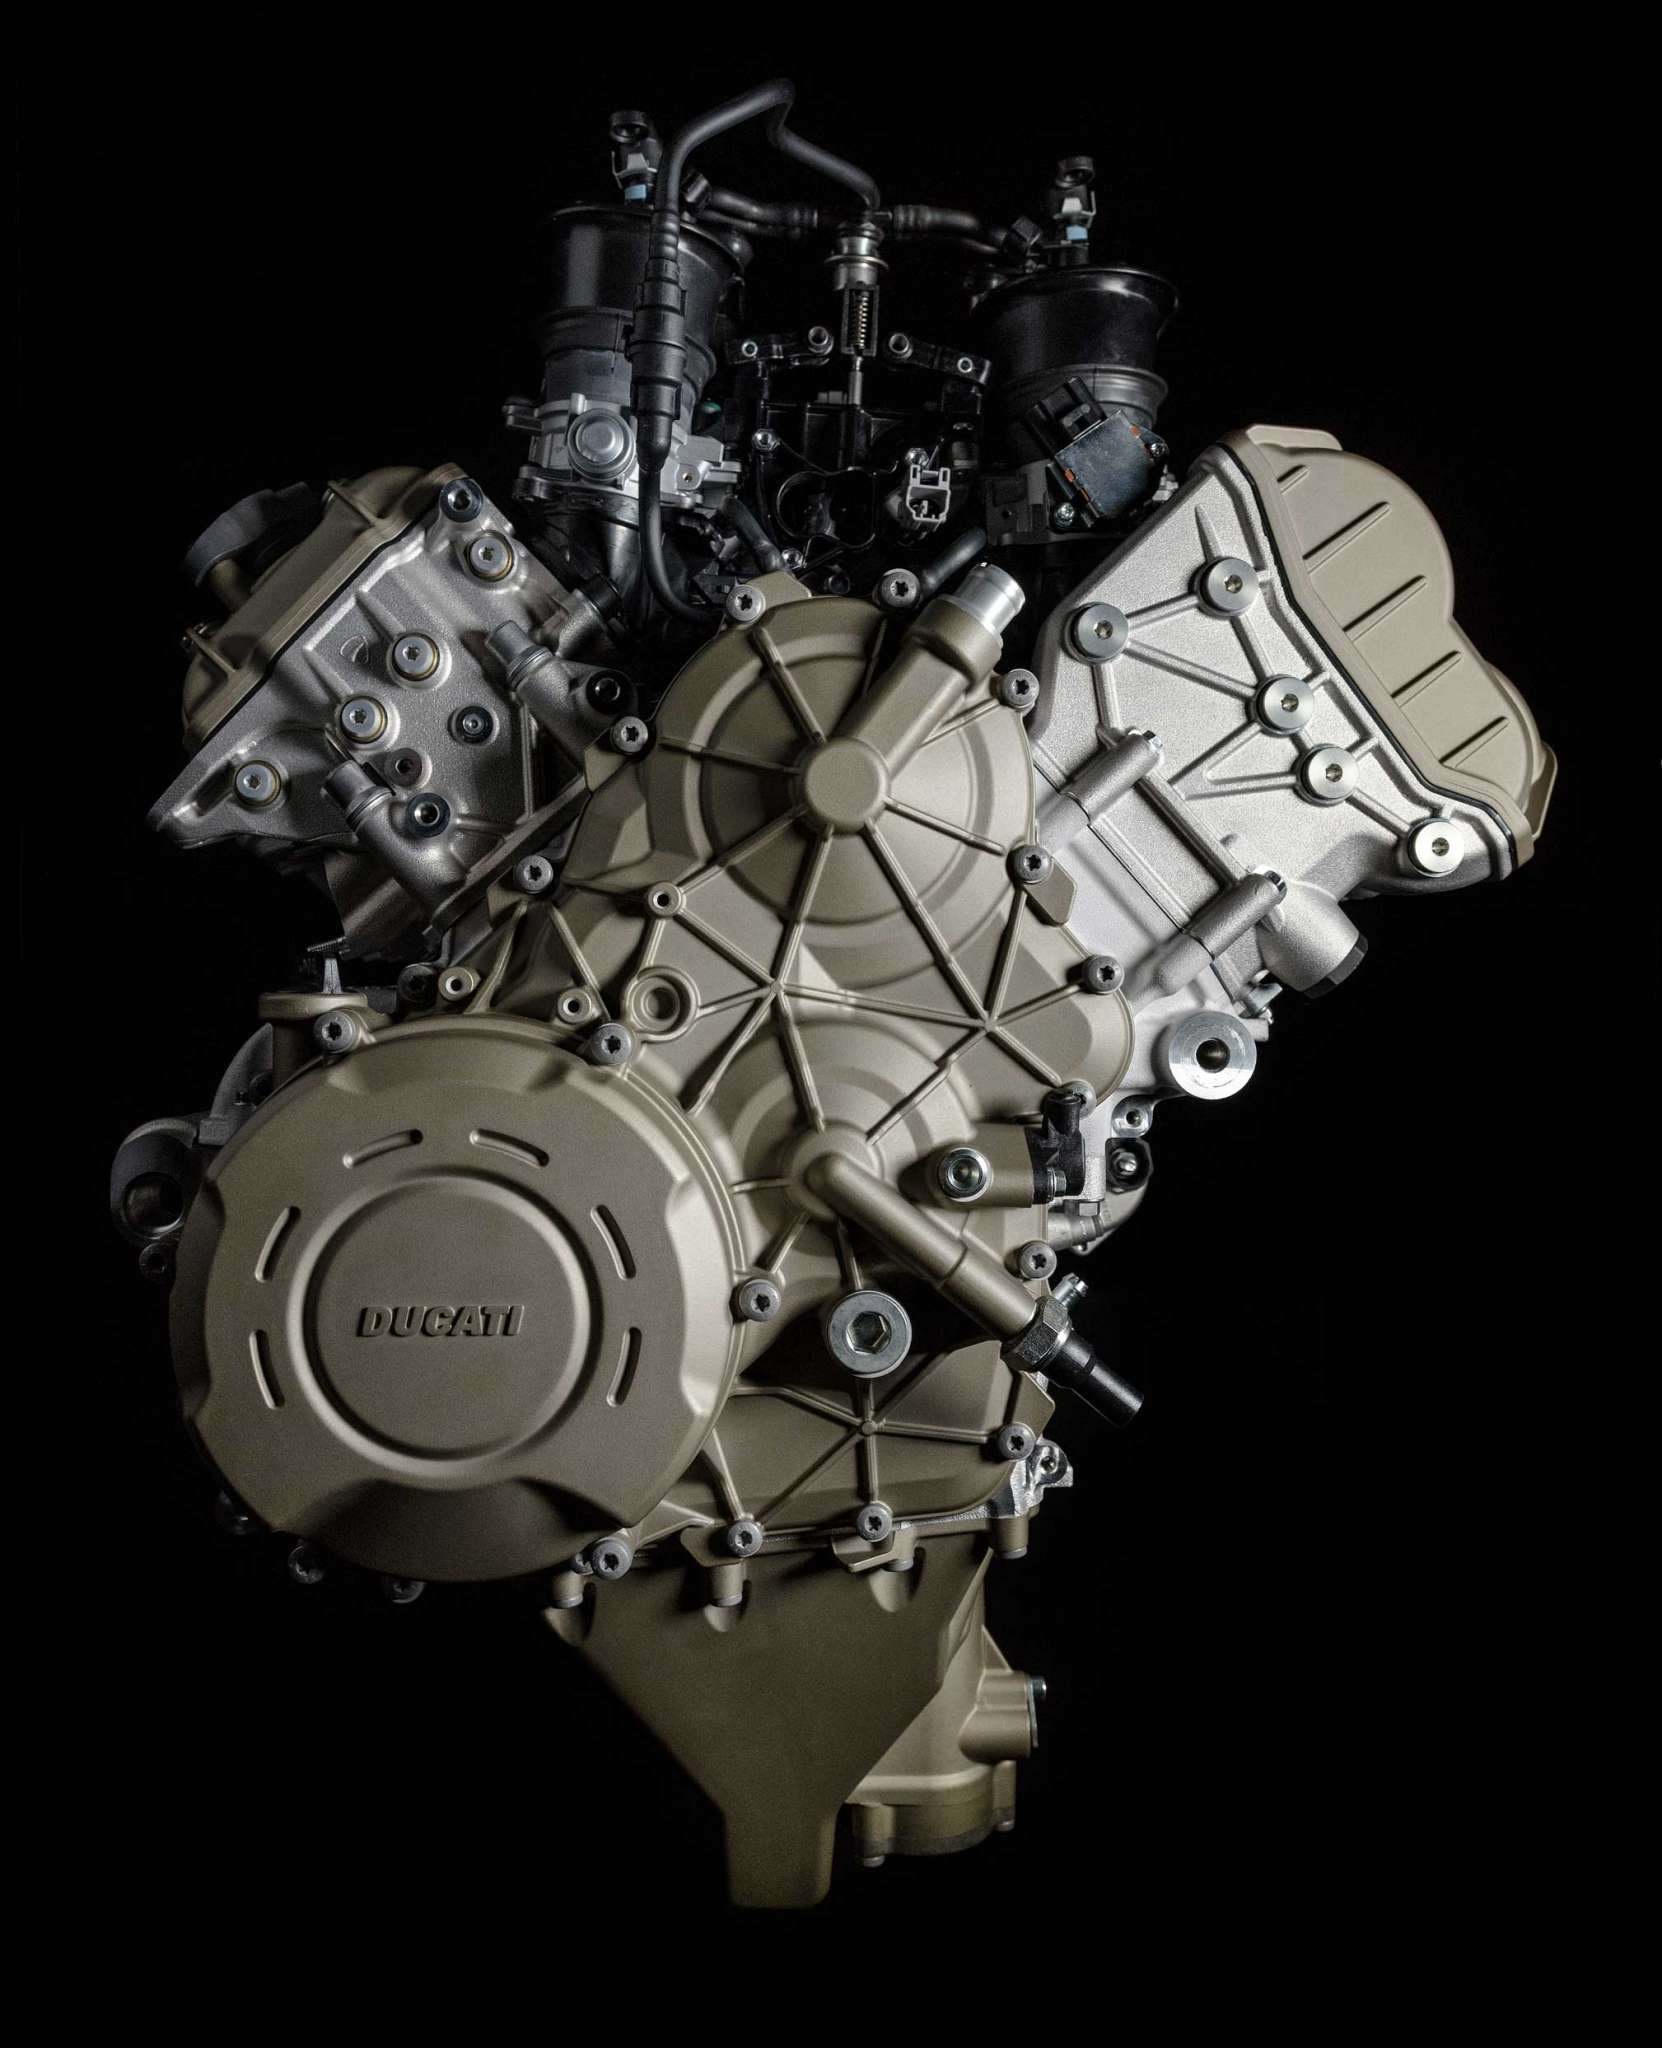 Yamaha 4 Cylinder Motorcycle Engine: 2018 Ducati Desmosedici Stradale V4 Engine Review • Total